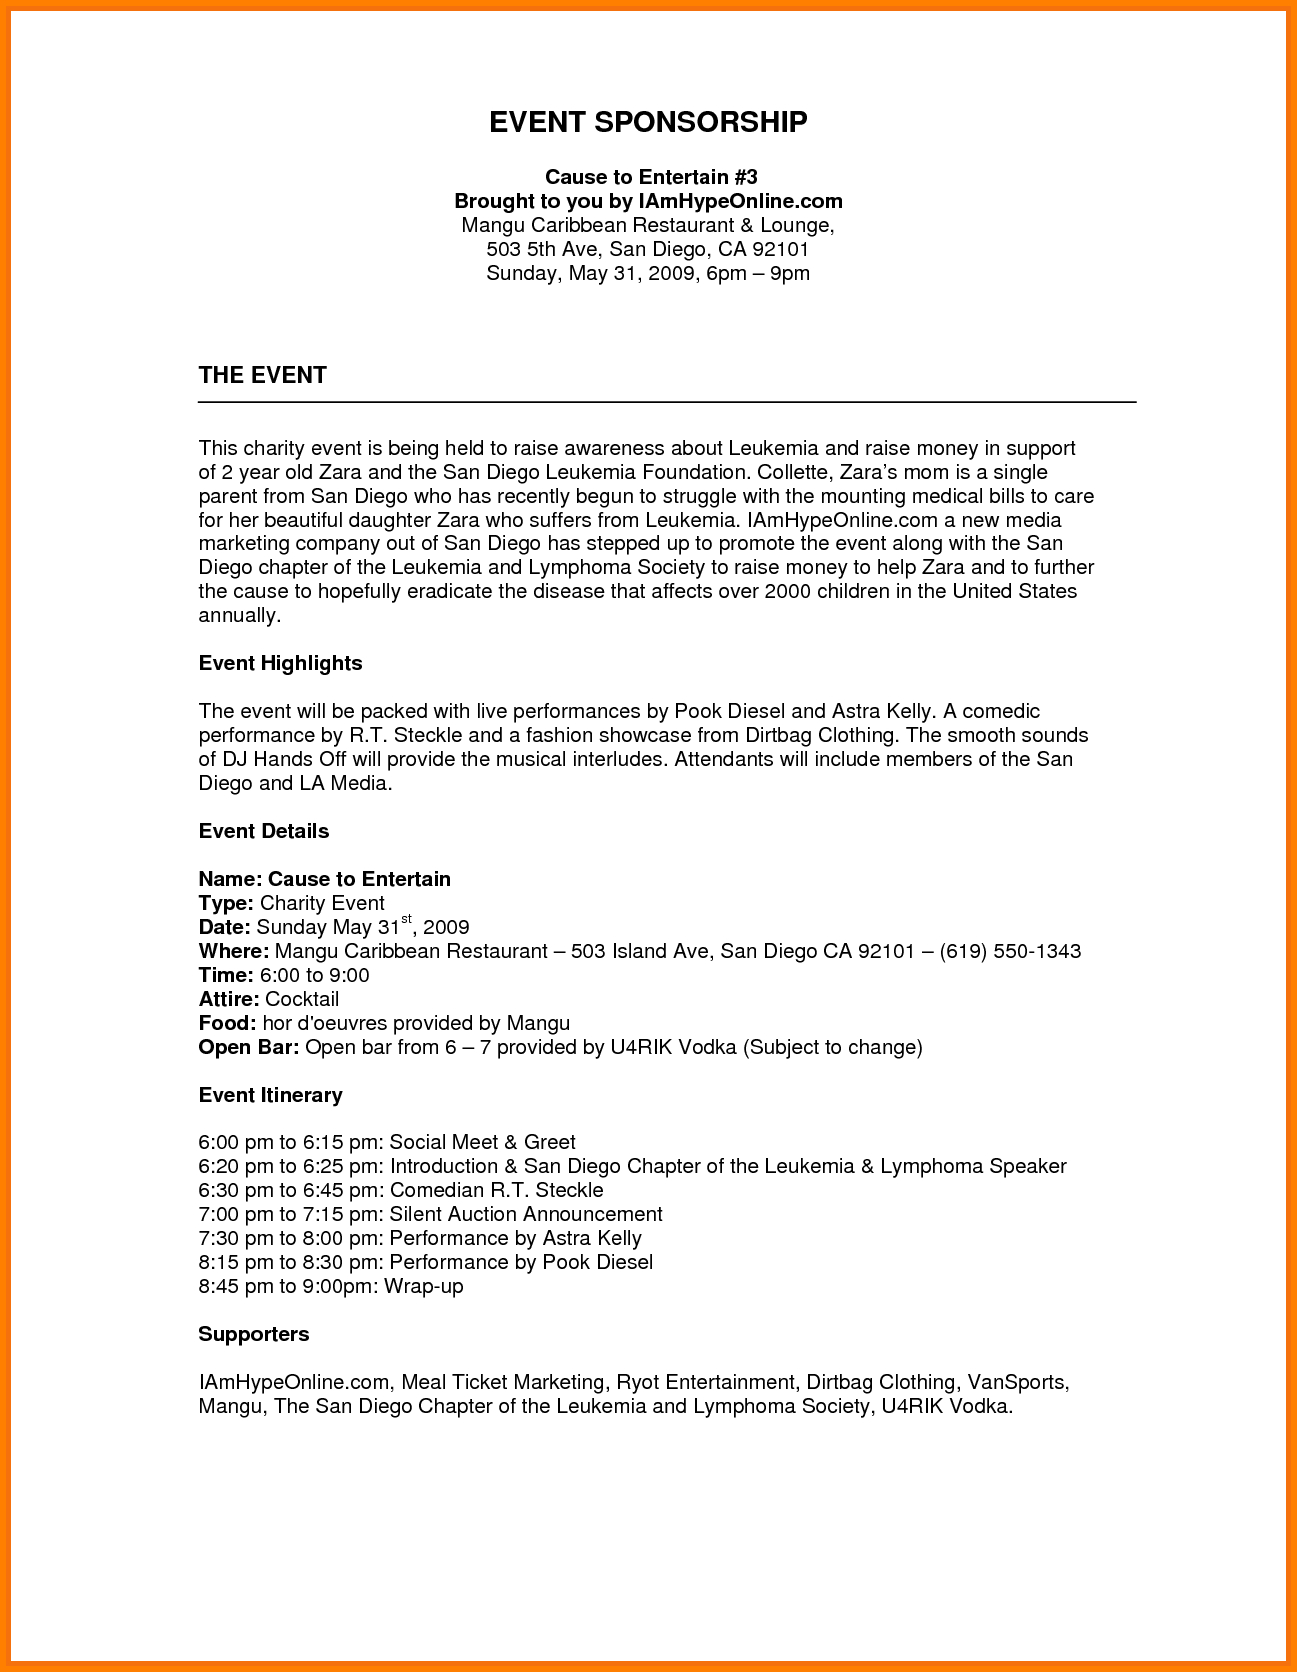 fundraiser proposal letter template Collection-Image result for sponsorship proposal template FinanceTemplate Finance 12-l